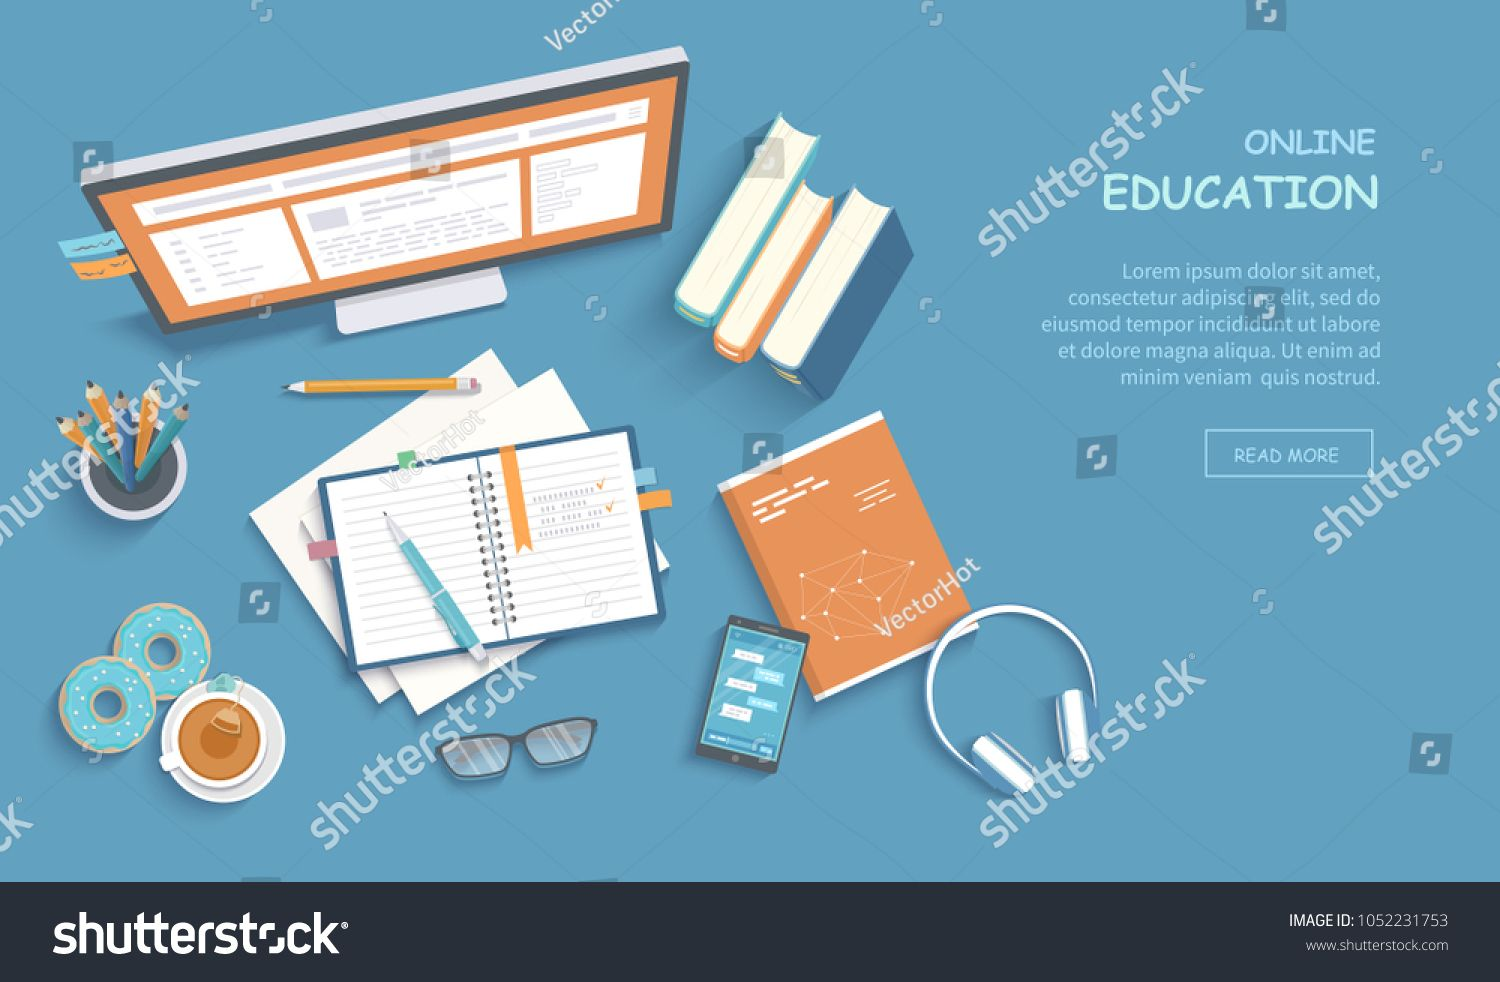 Online Education Training Courses E Learning Distance Learning Exam Preparation Home Schooling Web Banner Web Banner Web Banner Design Online Education